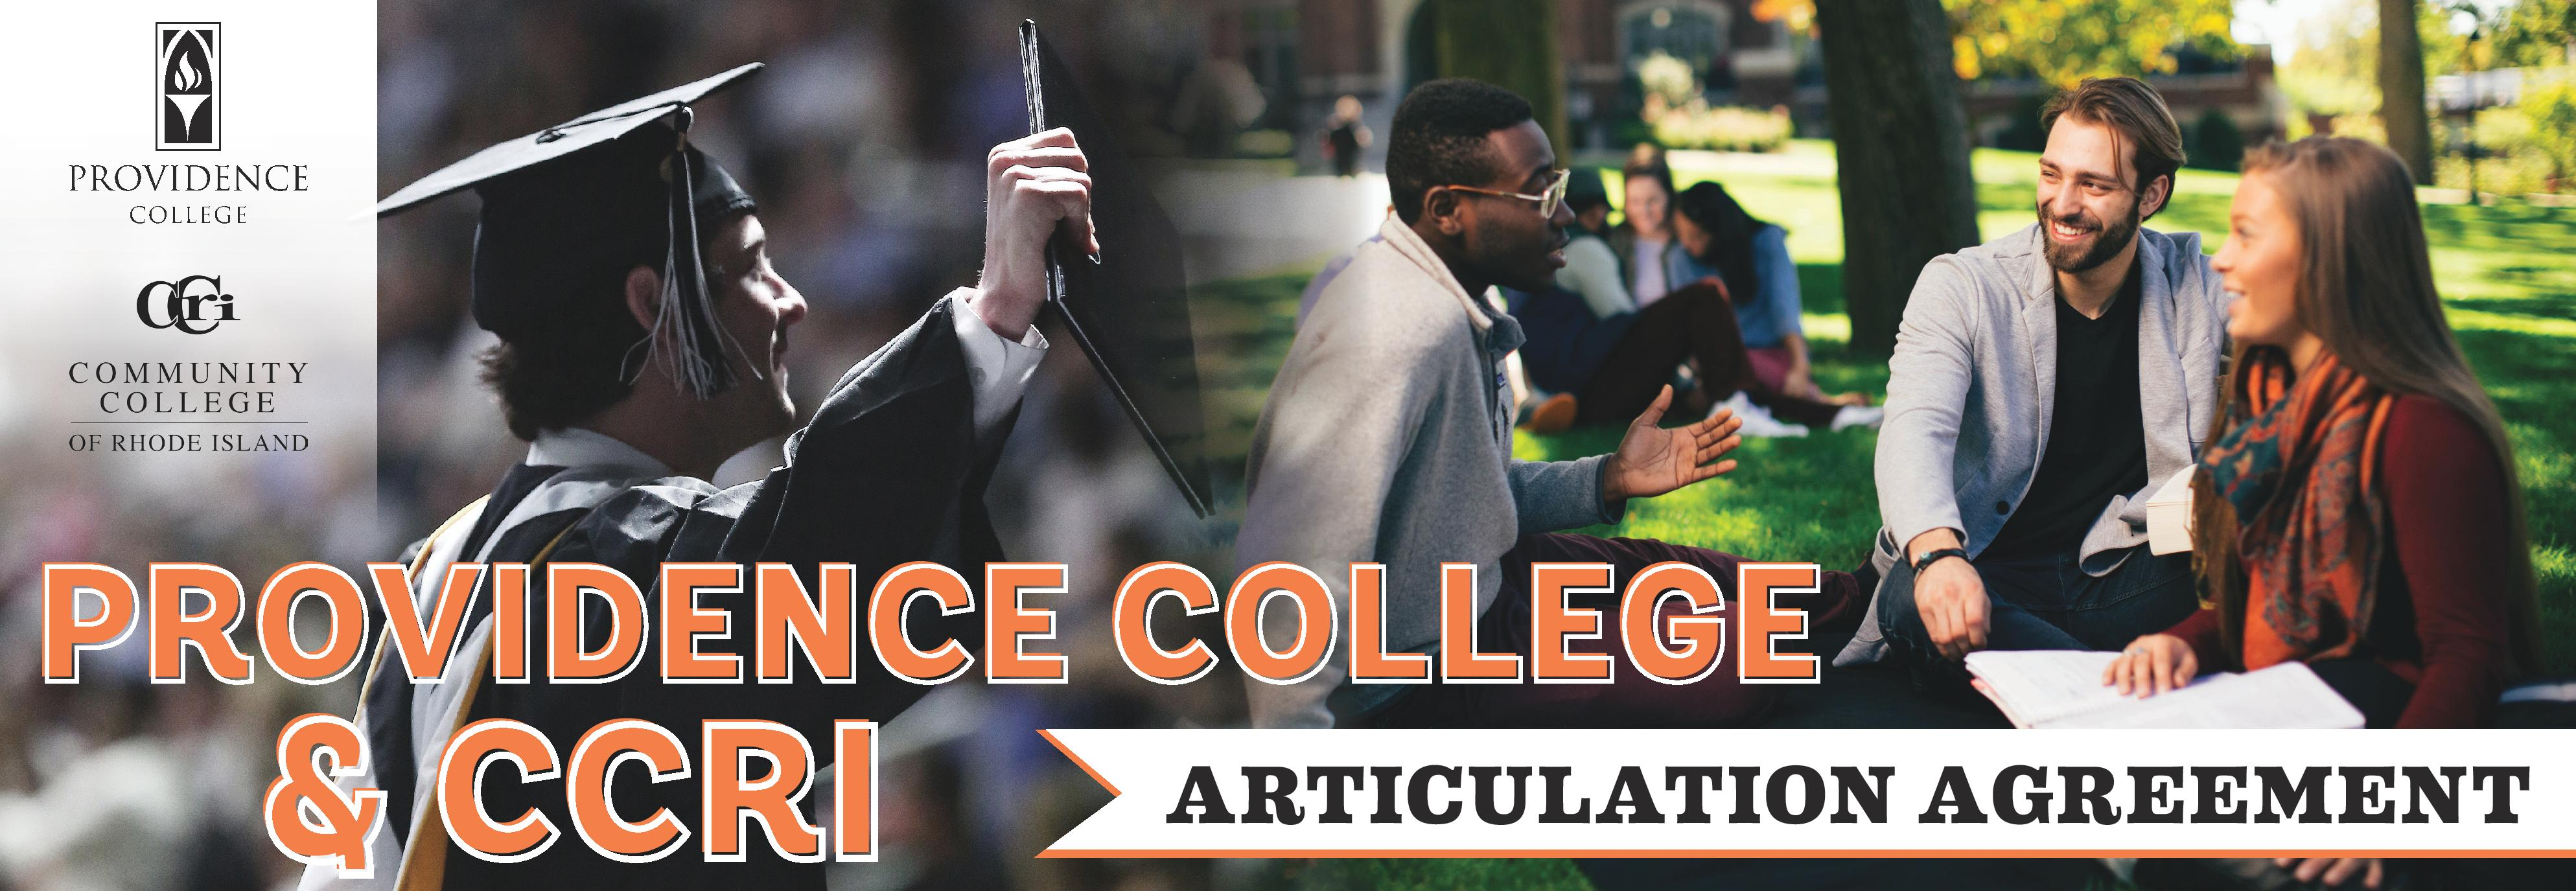 Providence College & CCRI Articulation Agreement